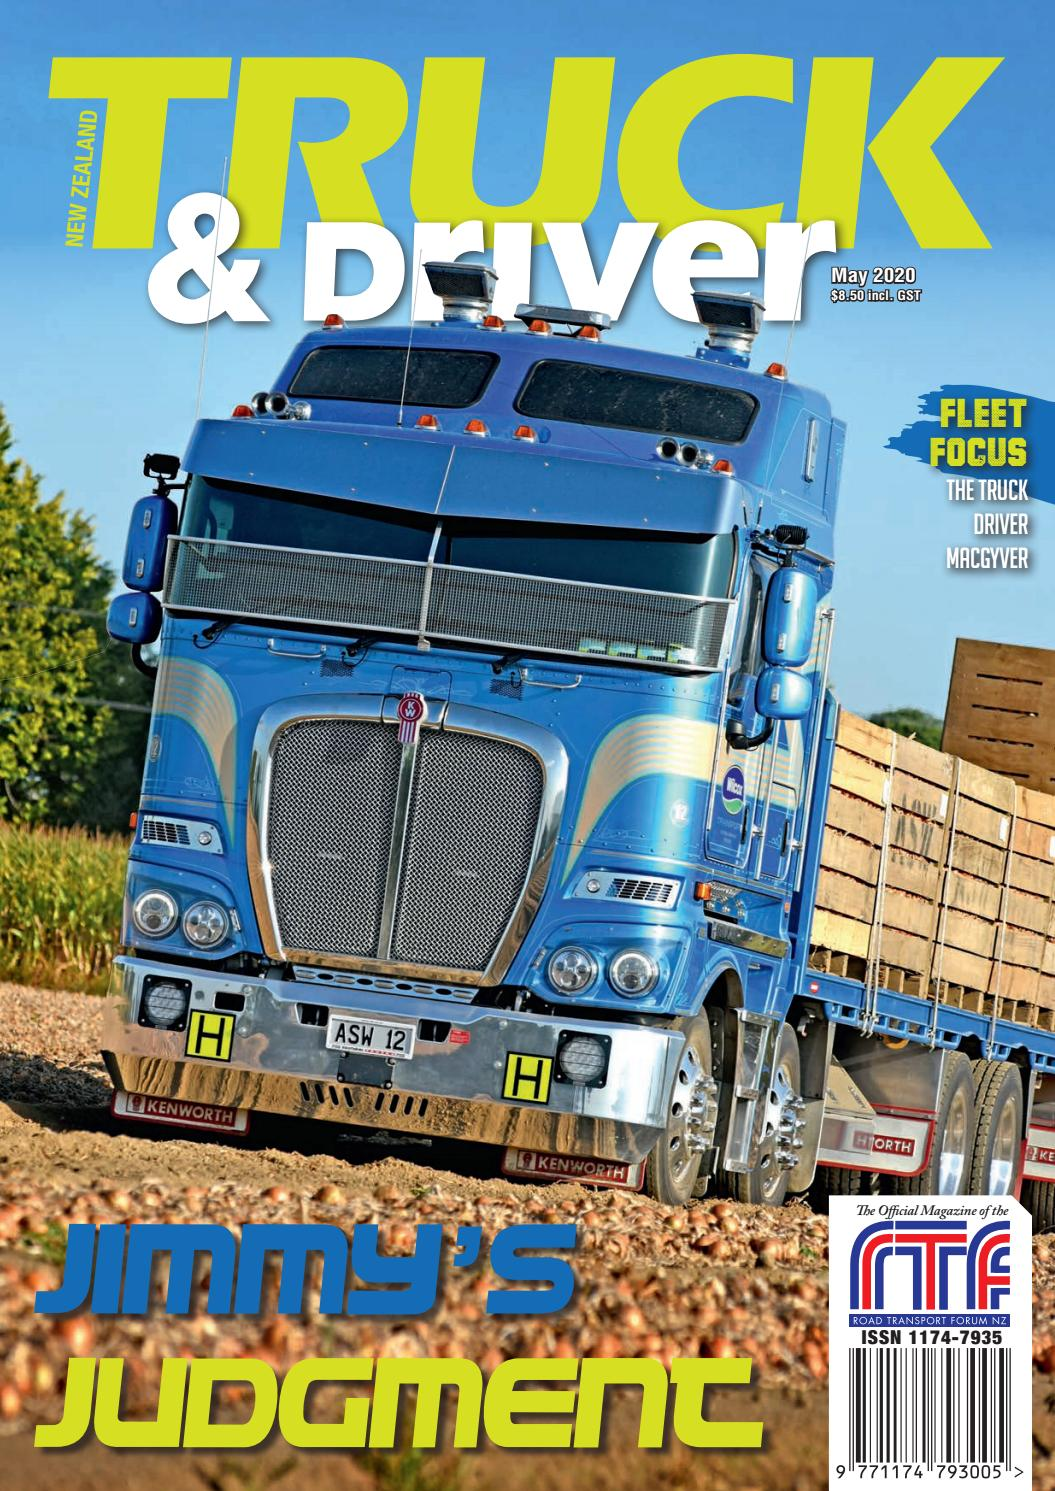 Nz Truck Driver And Equipment Guide Magazines May 2020 By Nz Truck Driver Issuu